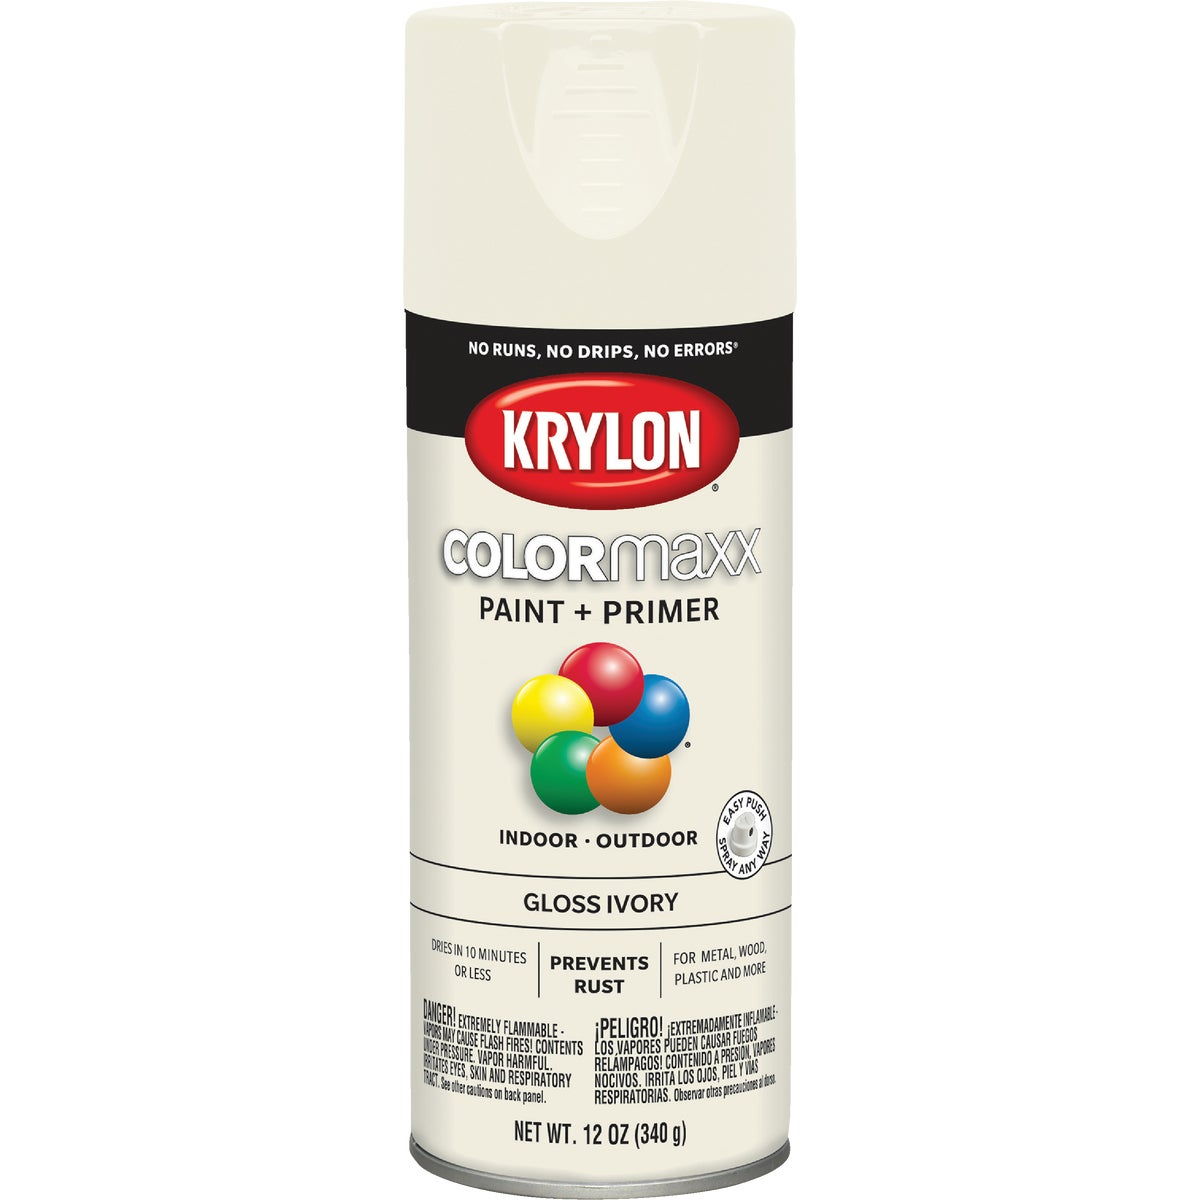 GLOSS IVORY SPRAY PAINT - 51504 by Krylon/consumer Div